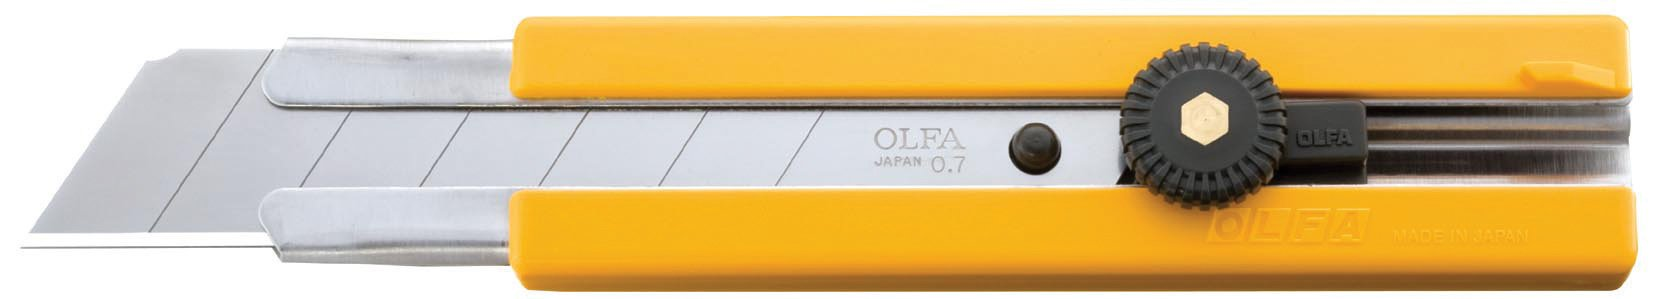 OLFA 5006 H-1 25mm Rubber Inset Grip EHD Utility Knife by OLFA